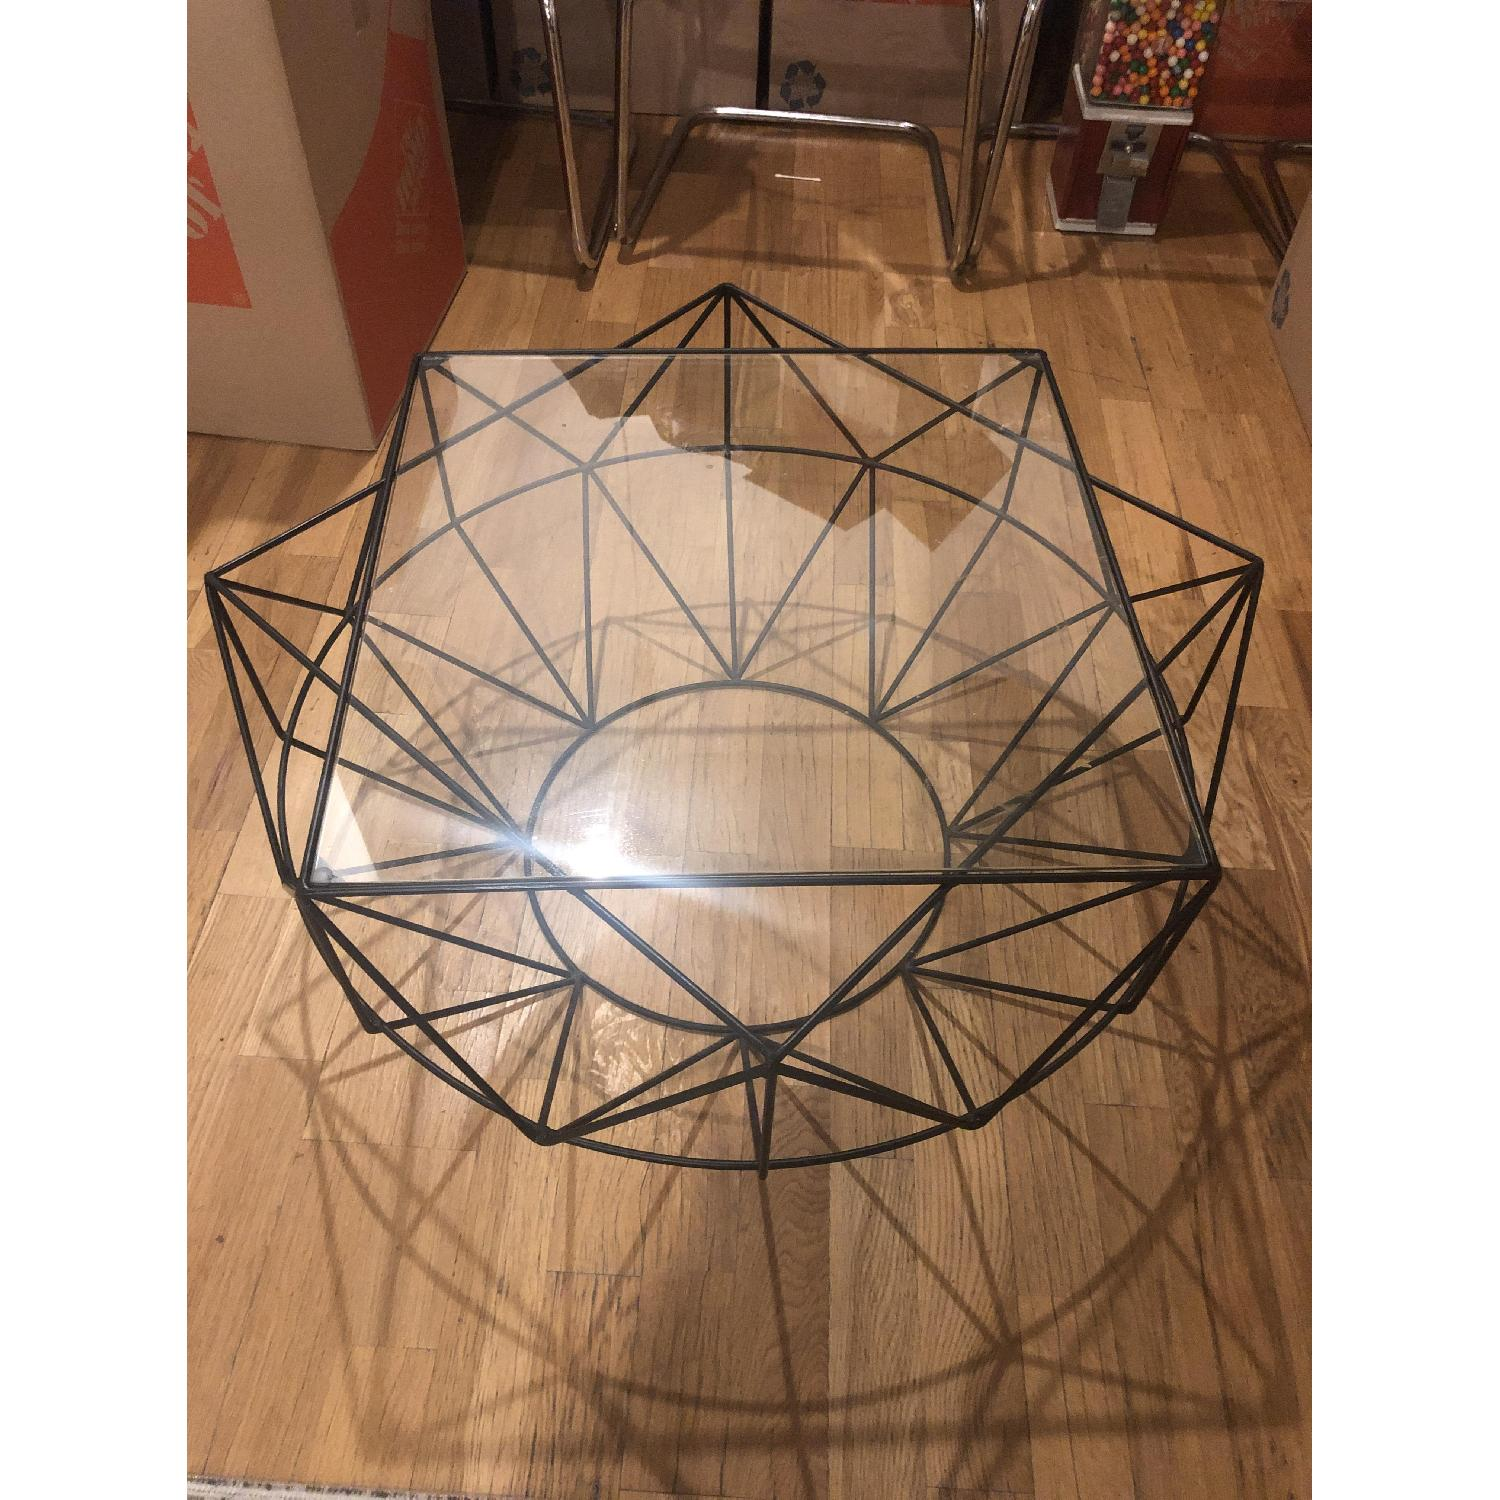 West Elm Glass & Blackened Metal Cocktail Table - image-1